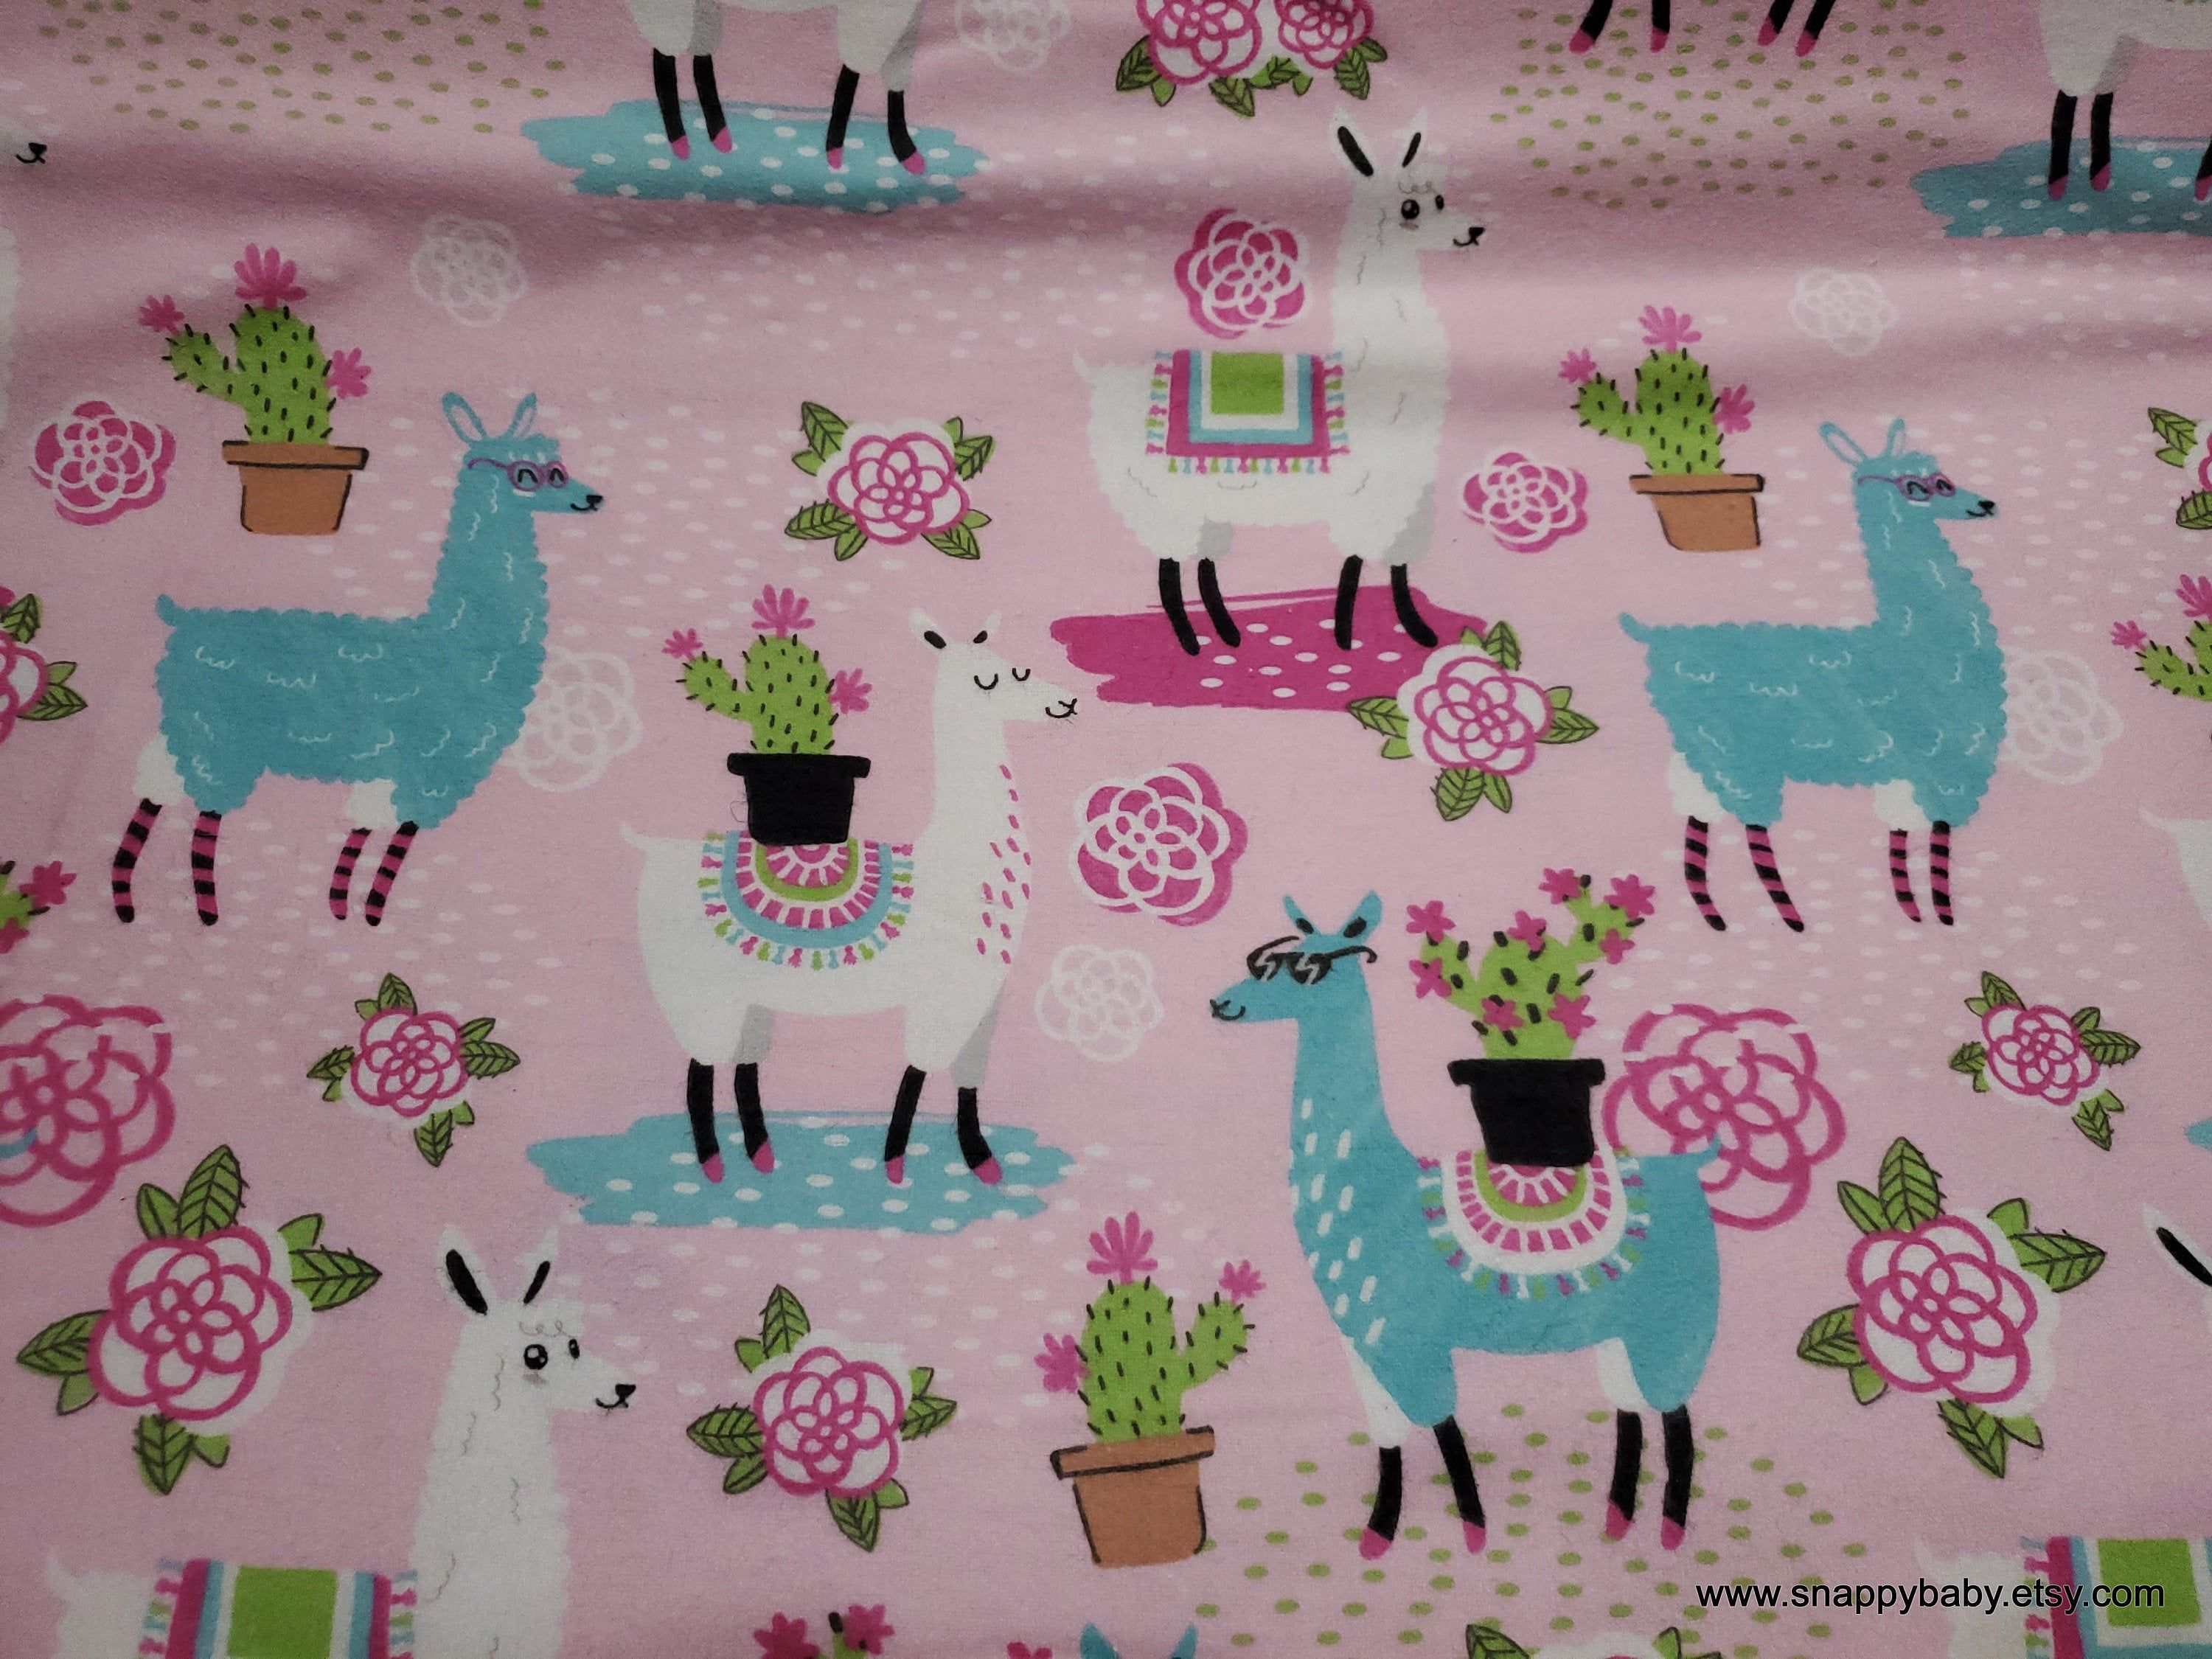 Flannel Fabric Floral Llamas Pink By The Yard 100 Cotton Flannel In 2020 Flannel Fabric Cotton Flannel Handmade